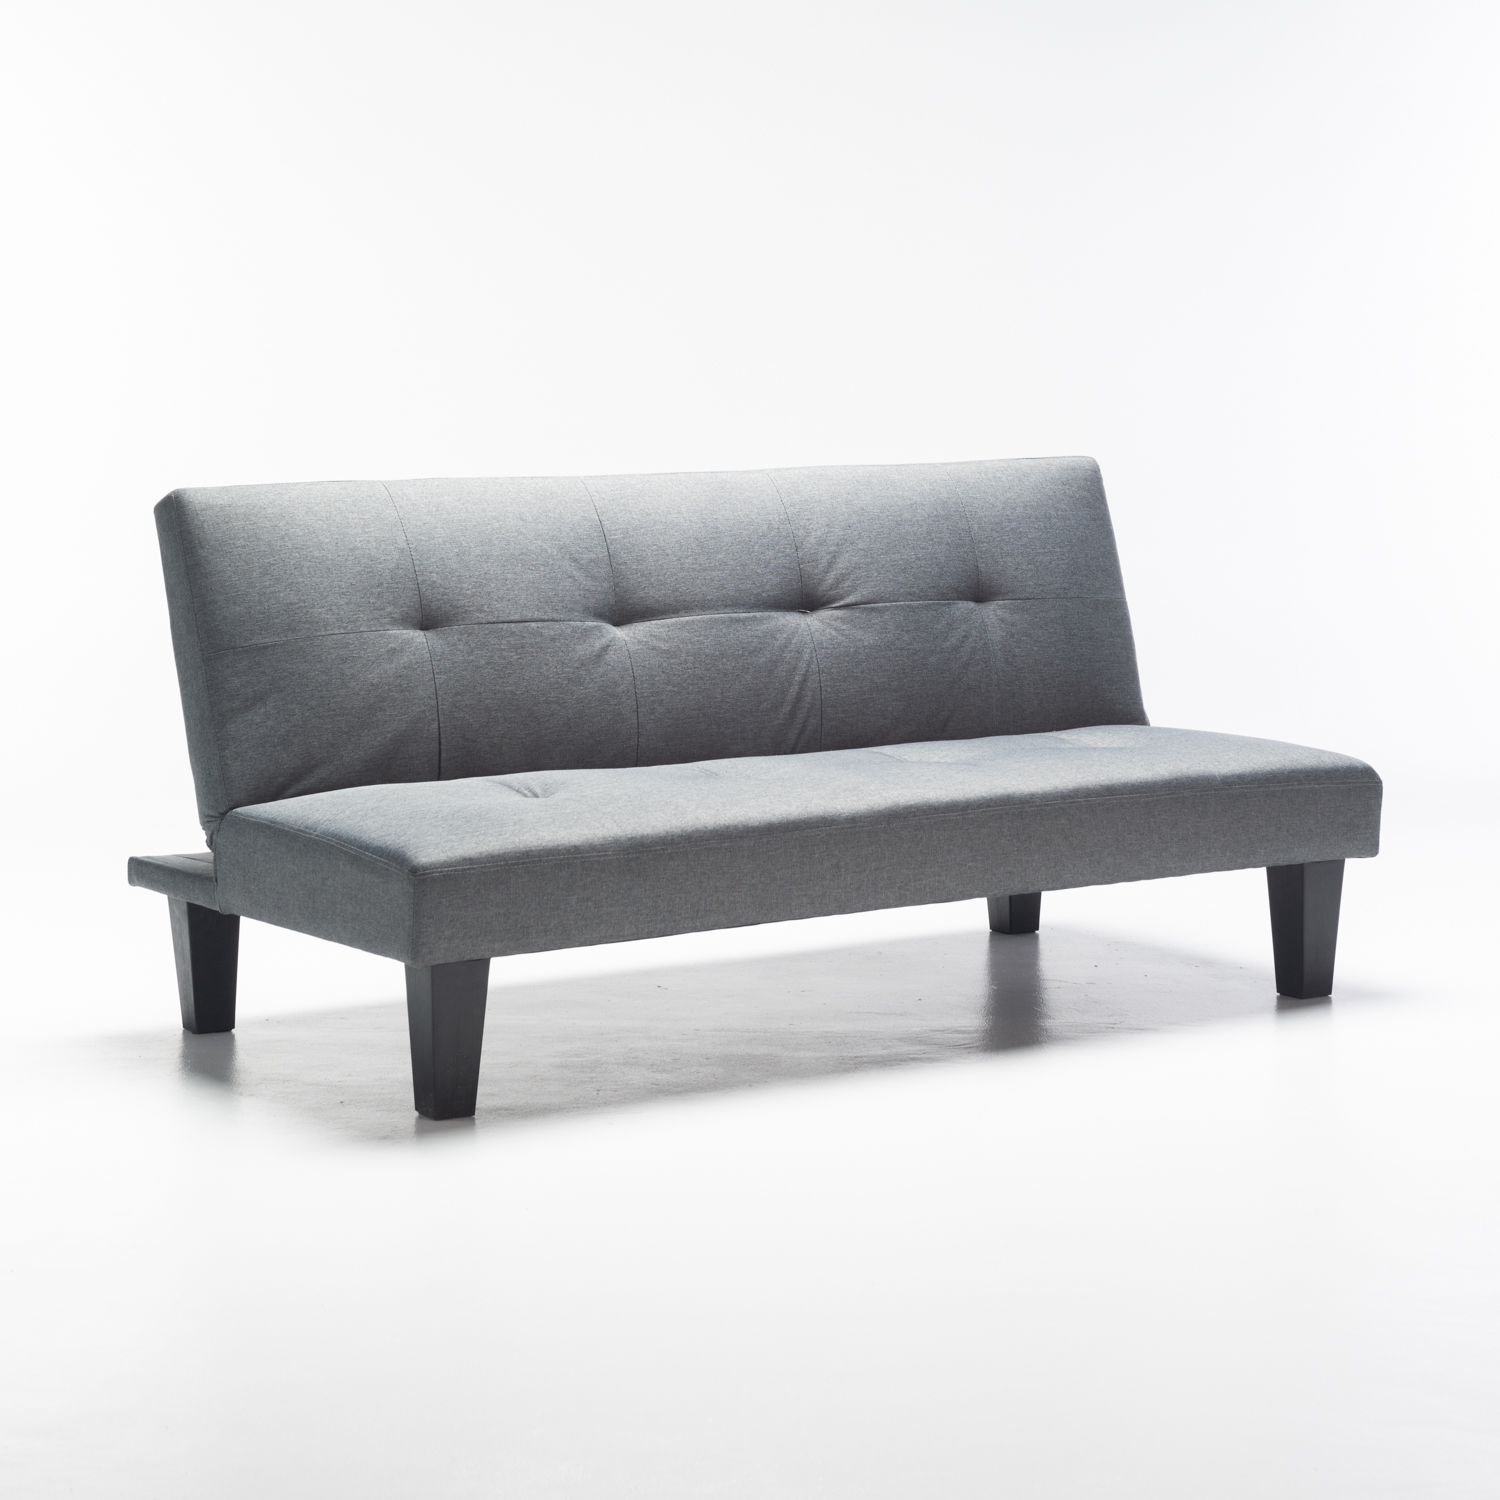 ALLAN FABRIC SLEEPER COUCH